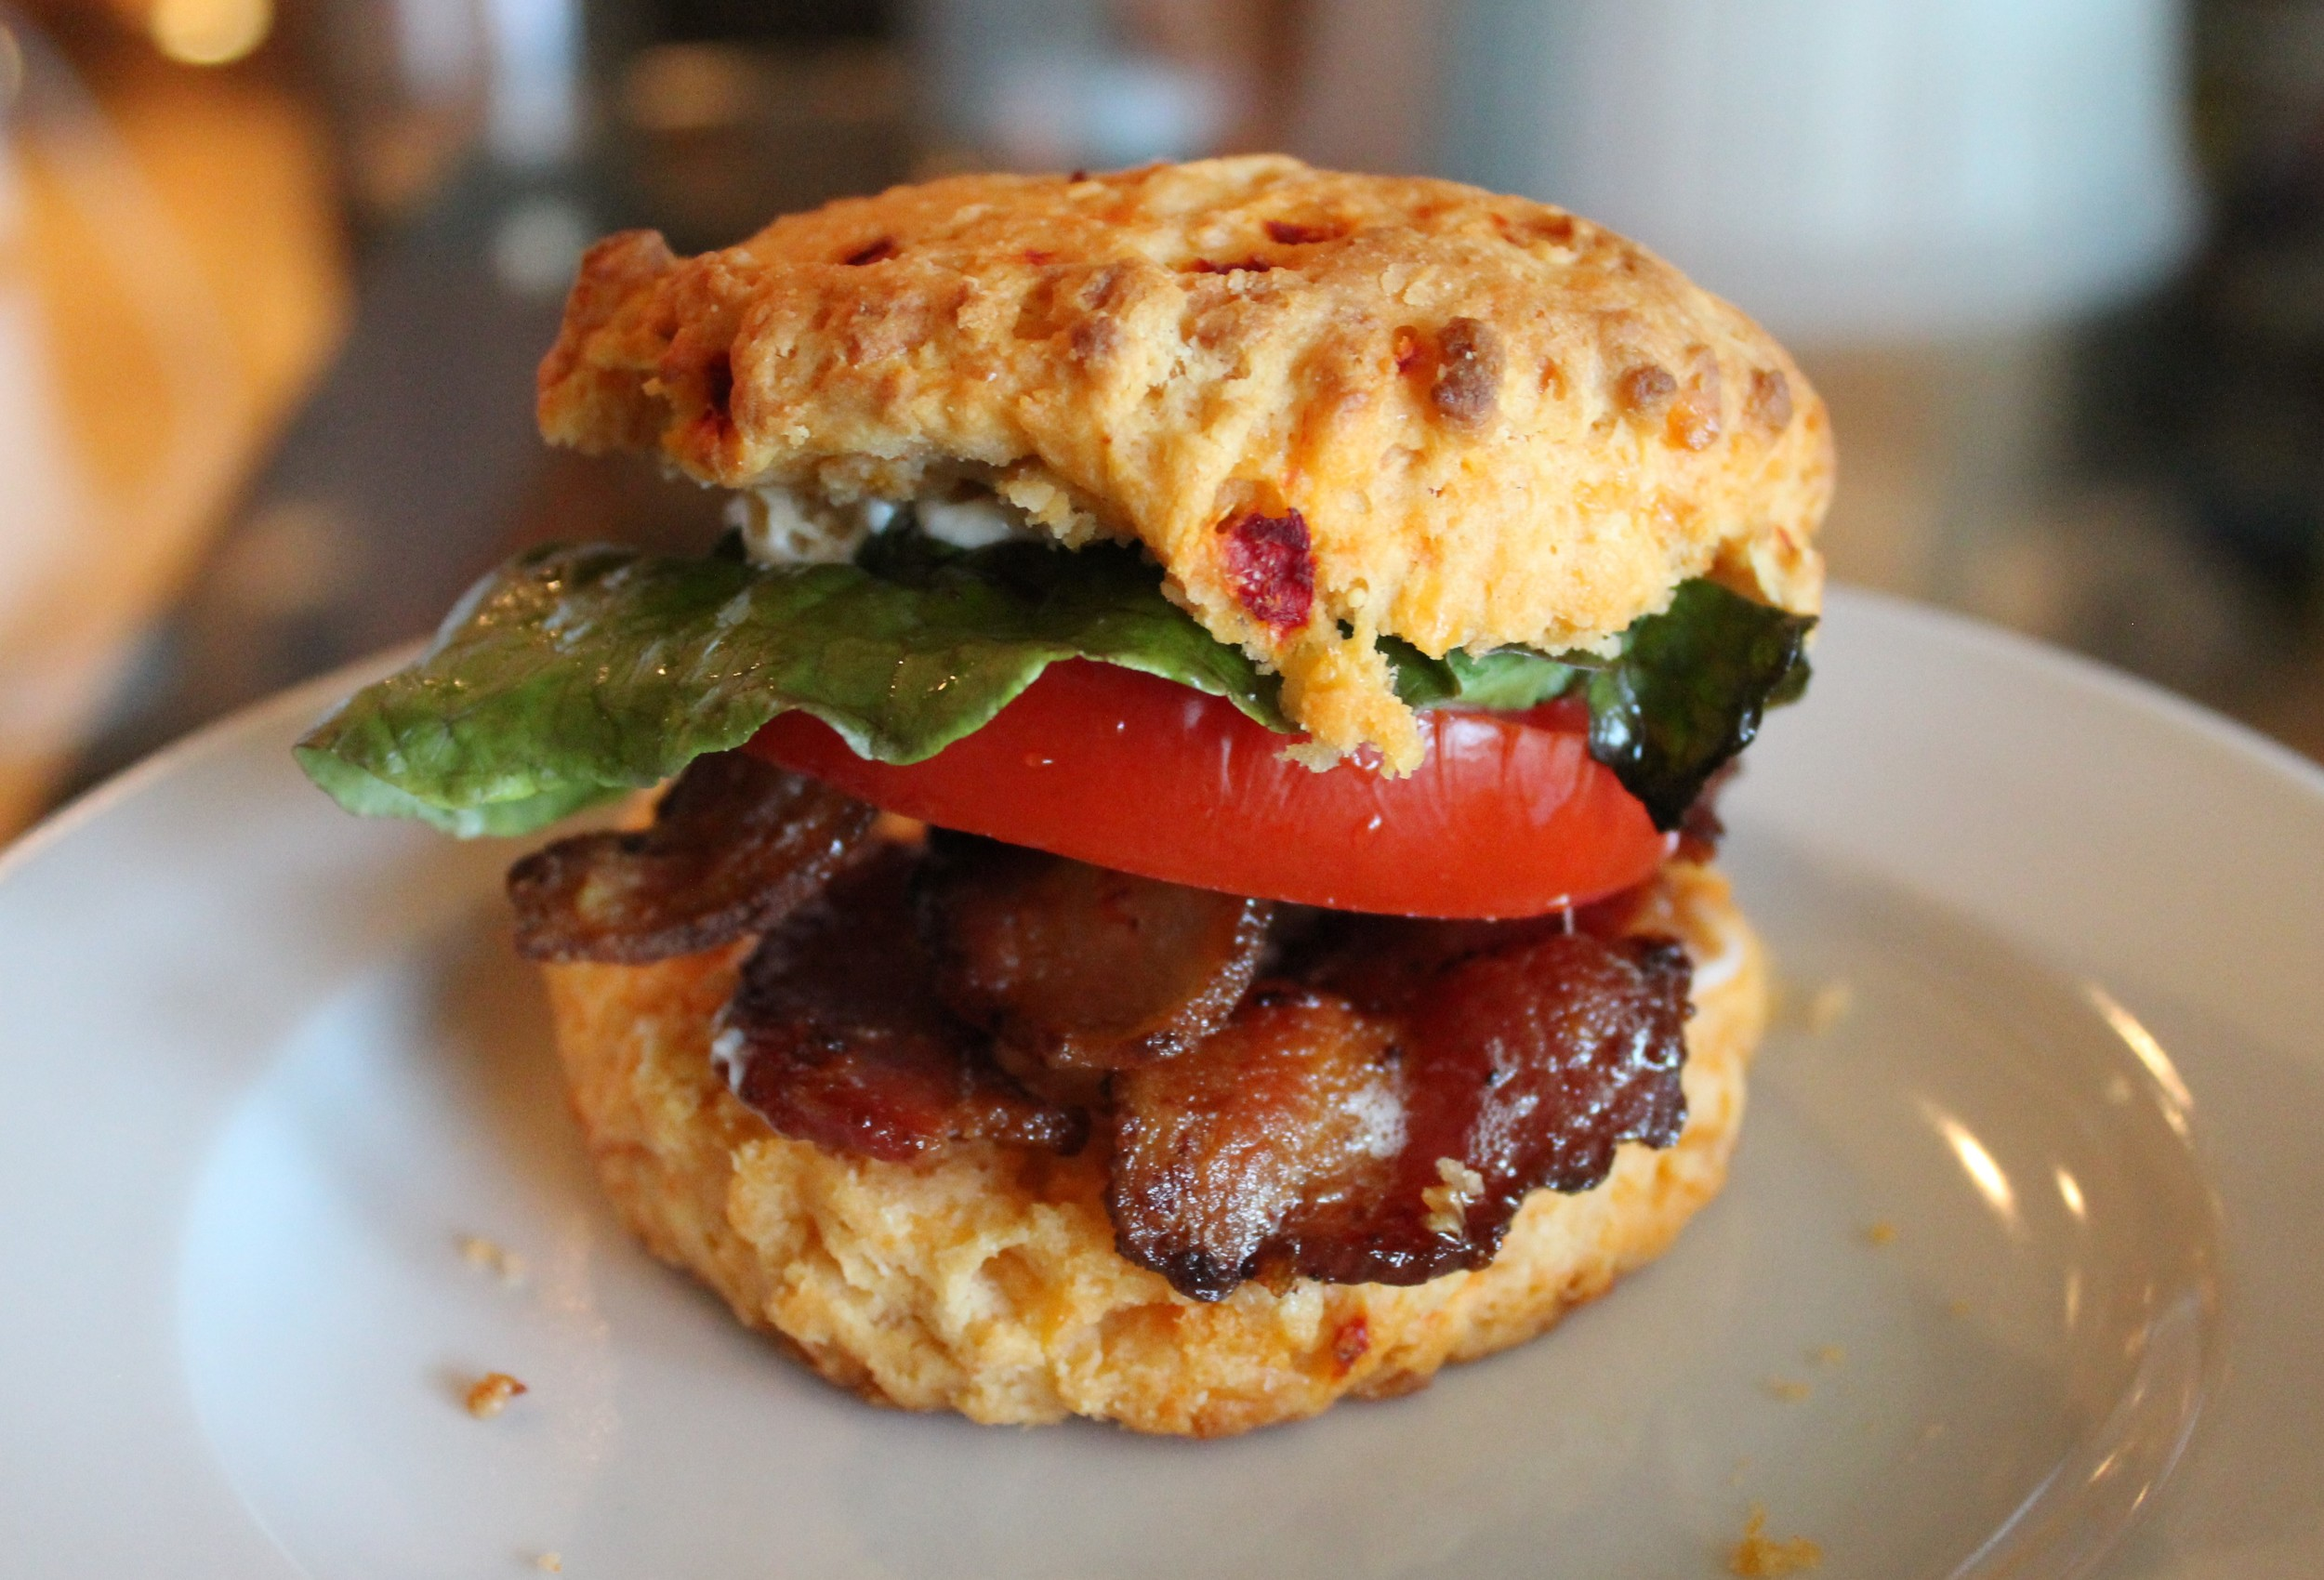 BLTs are great on the biscuits too